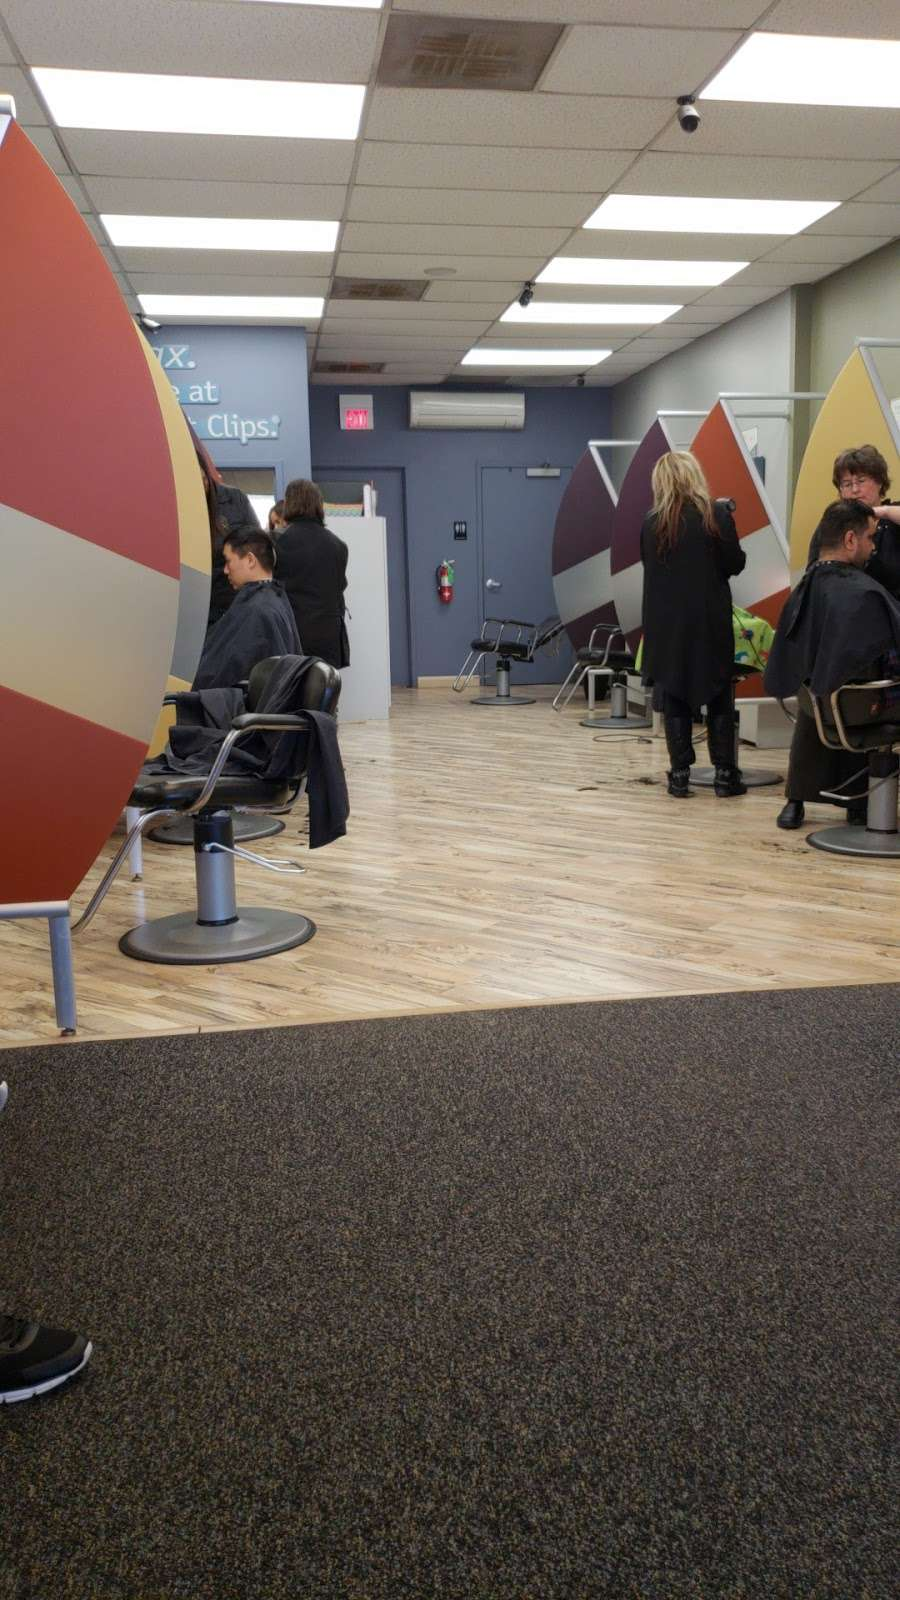 Great Clips - hair care  | Photo 2 of 2 | Address: 8251 W Belmont Ave, River Grove, IL 60171, USA | Phone: (708) 456-4991